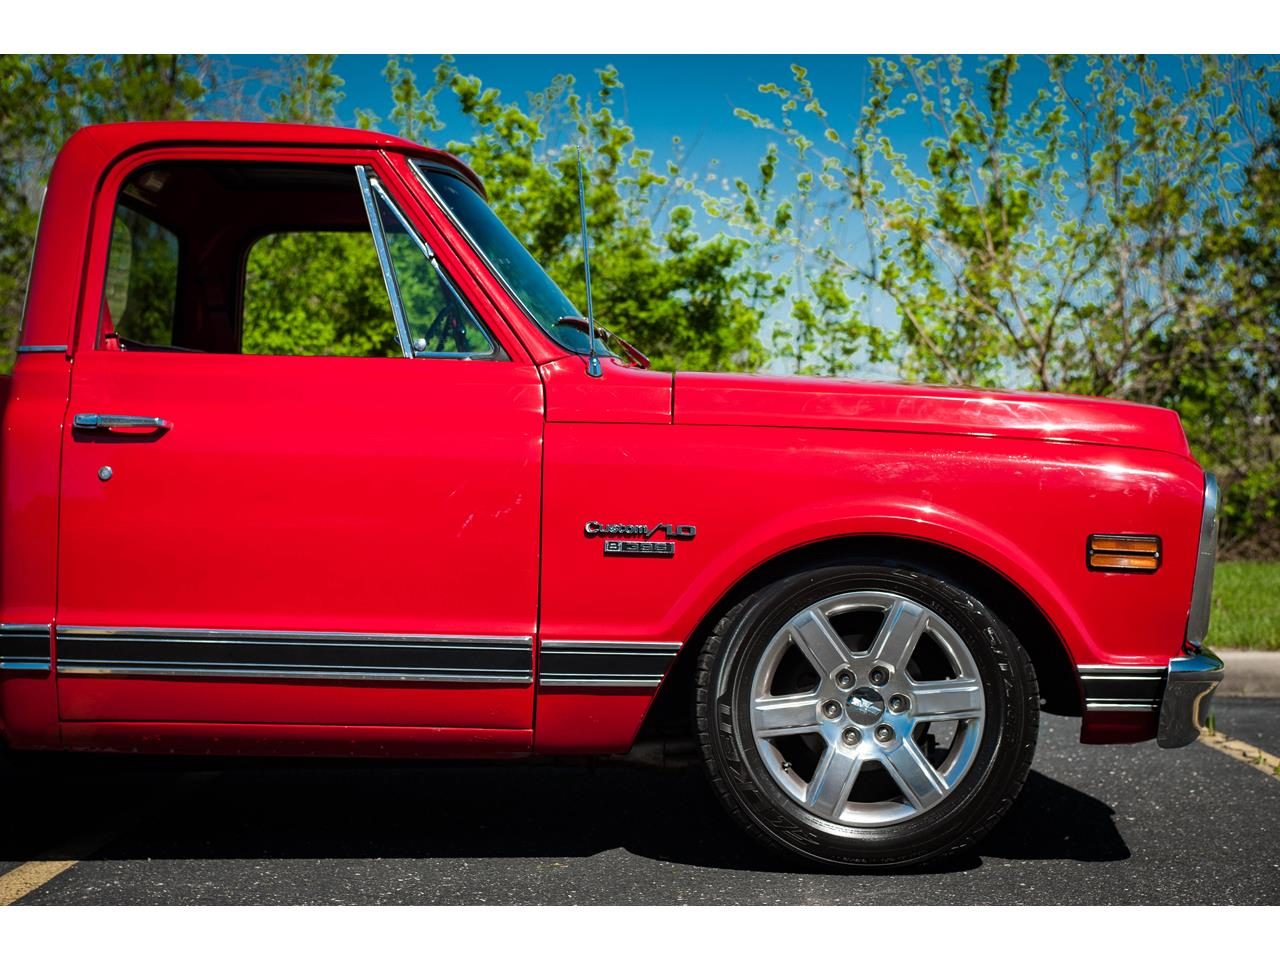 Large Picture of Classic '69 C10 located in O'Fallon Illinois - $44,500.00 Offered by Gateway Classic Cars - St. Louis - QB8I